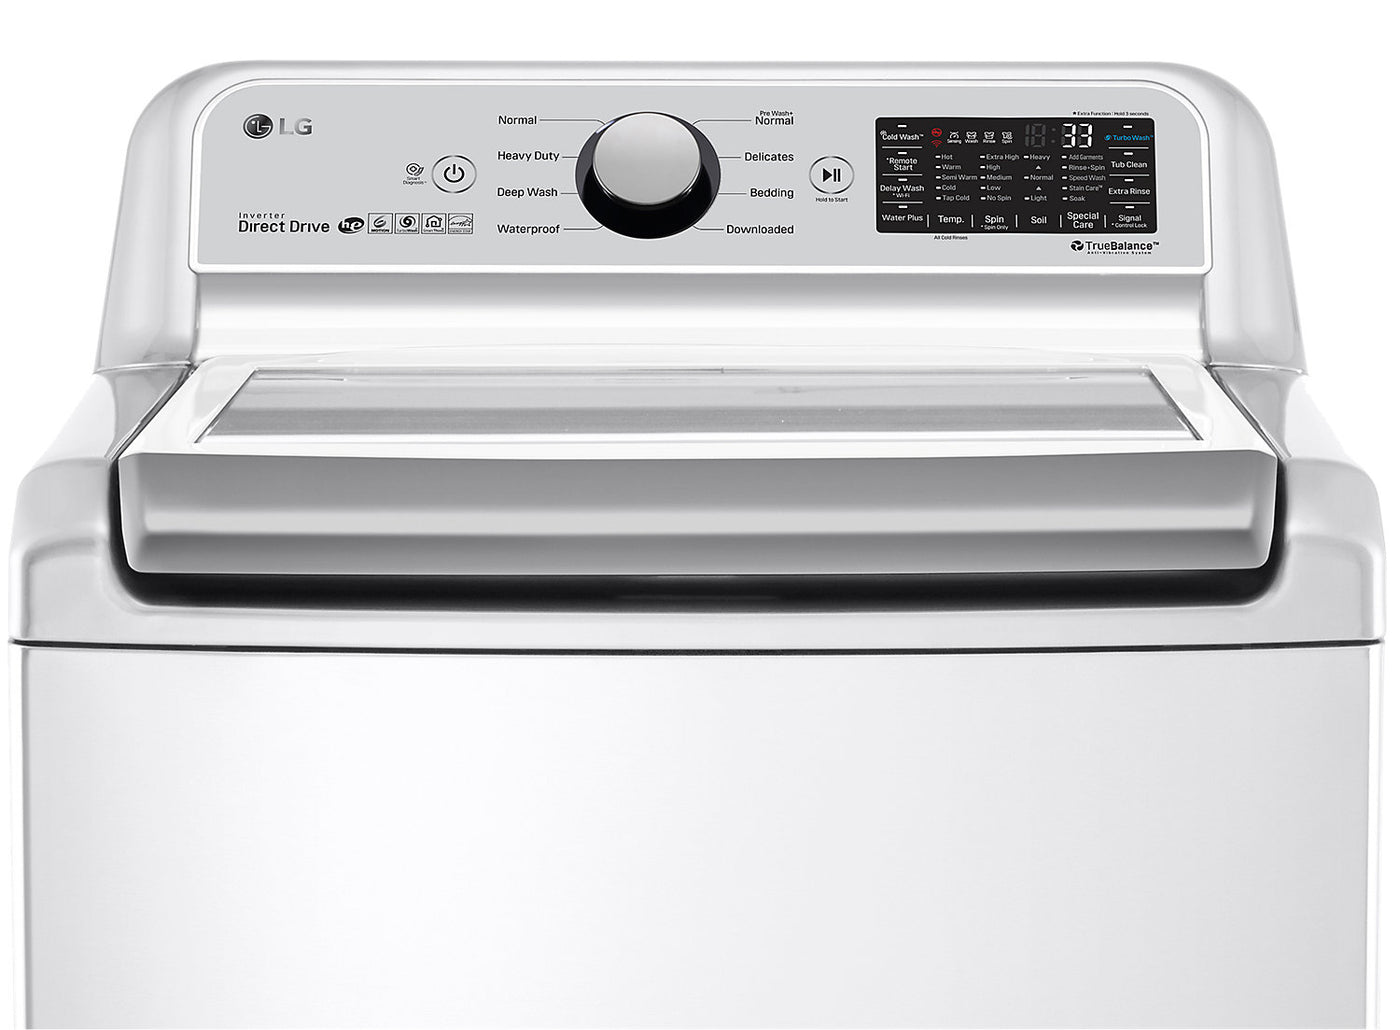 LG 5 8 Cu Ft Top-Load Smart Washer with TurboWash® - WT7300CW